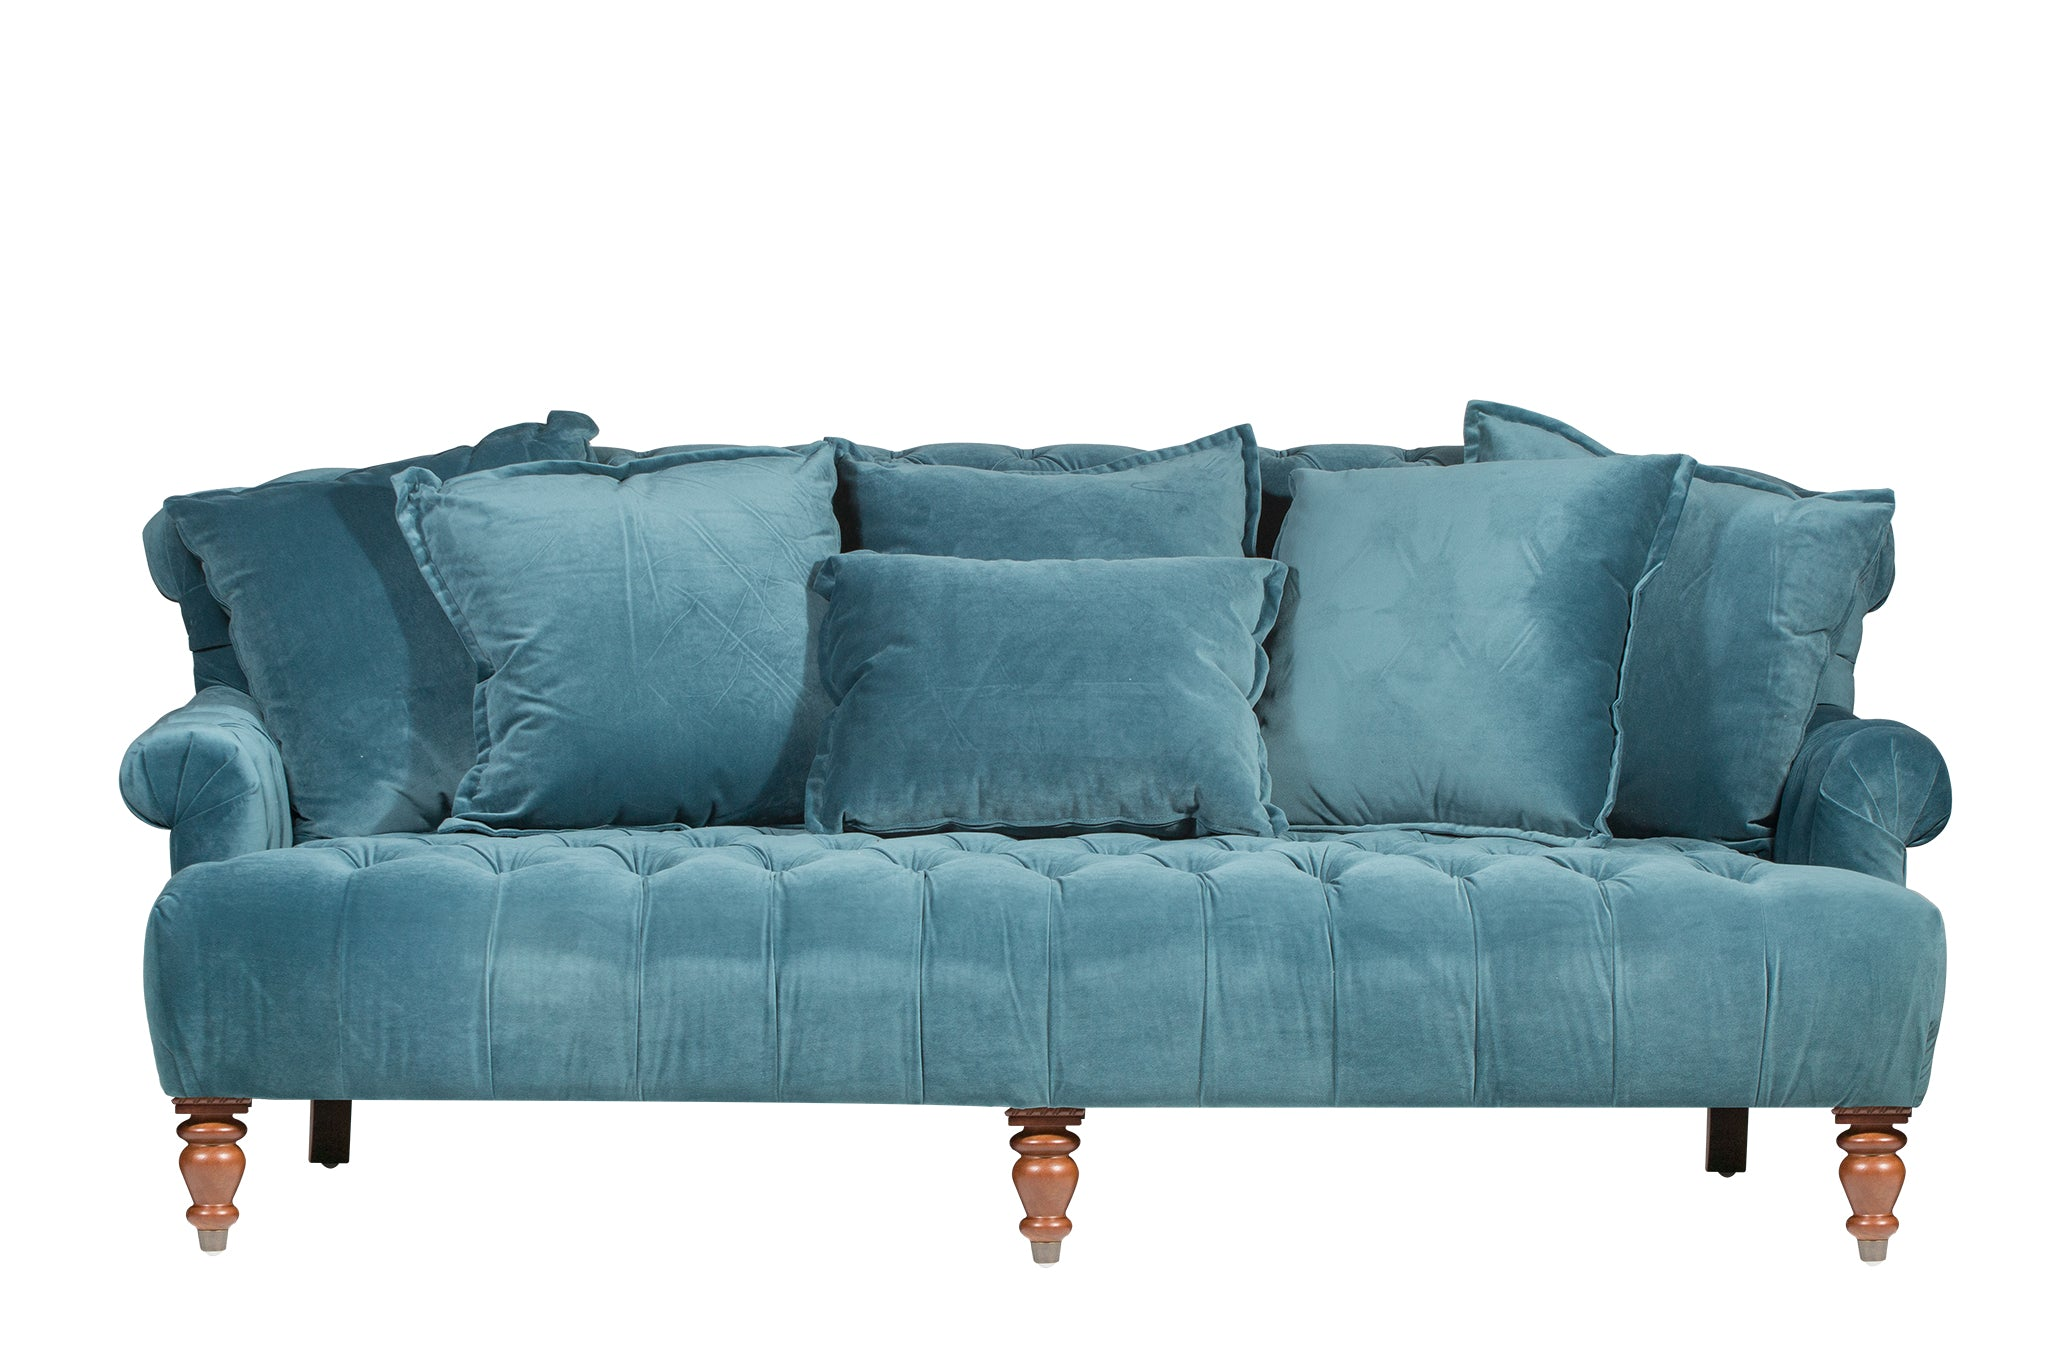 sofa scandinavian blue gray and article century mid pebble product timber furniture modern sofas